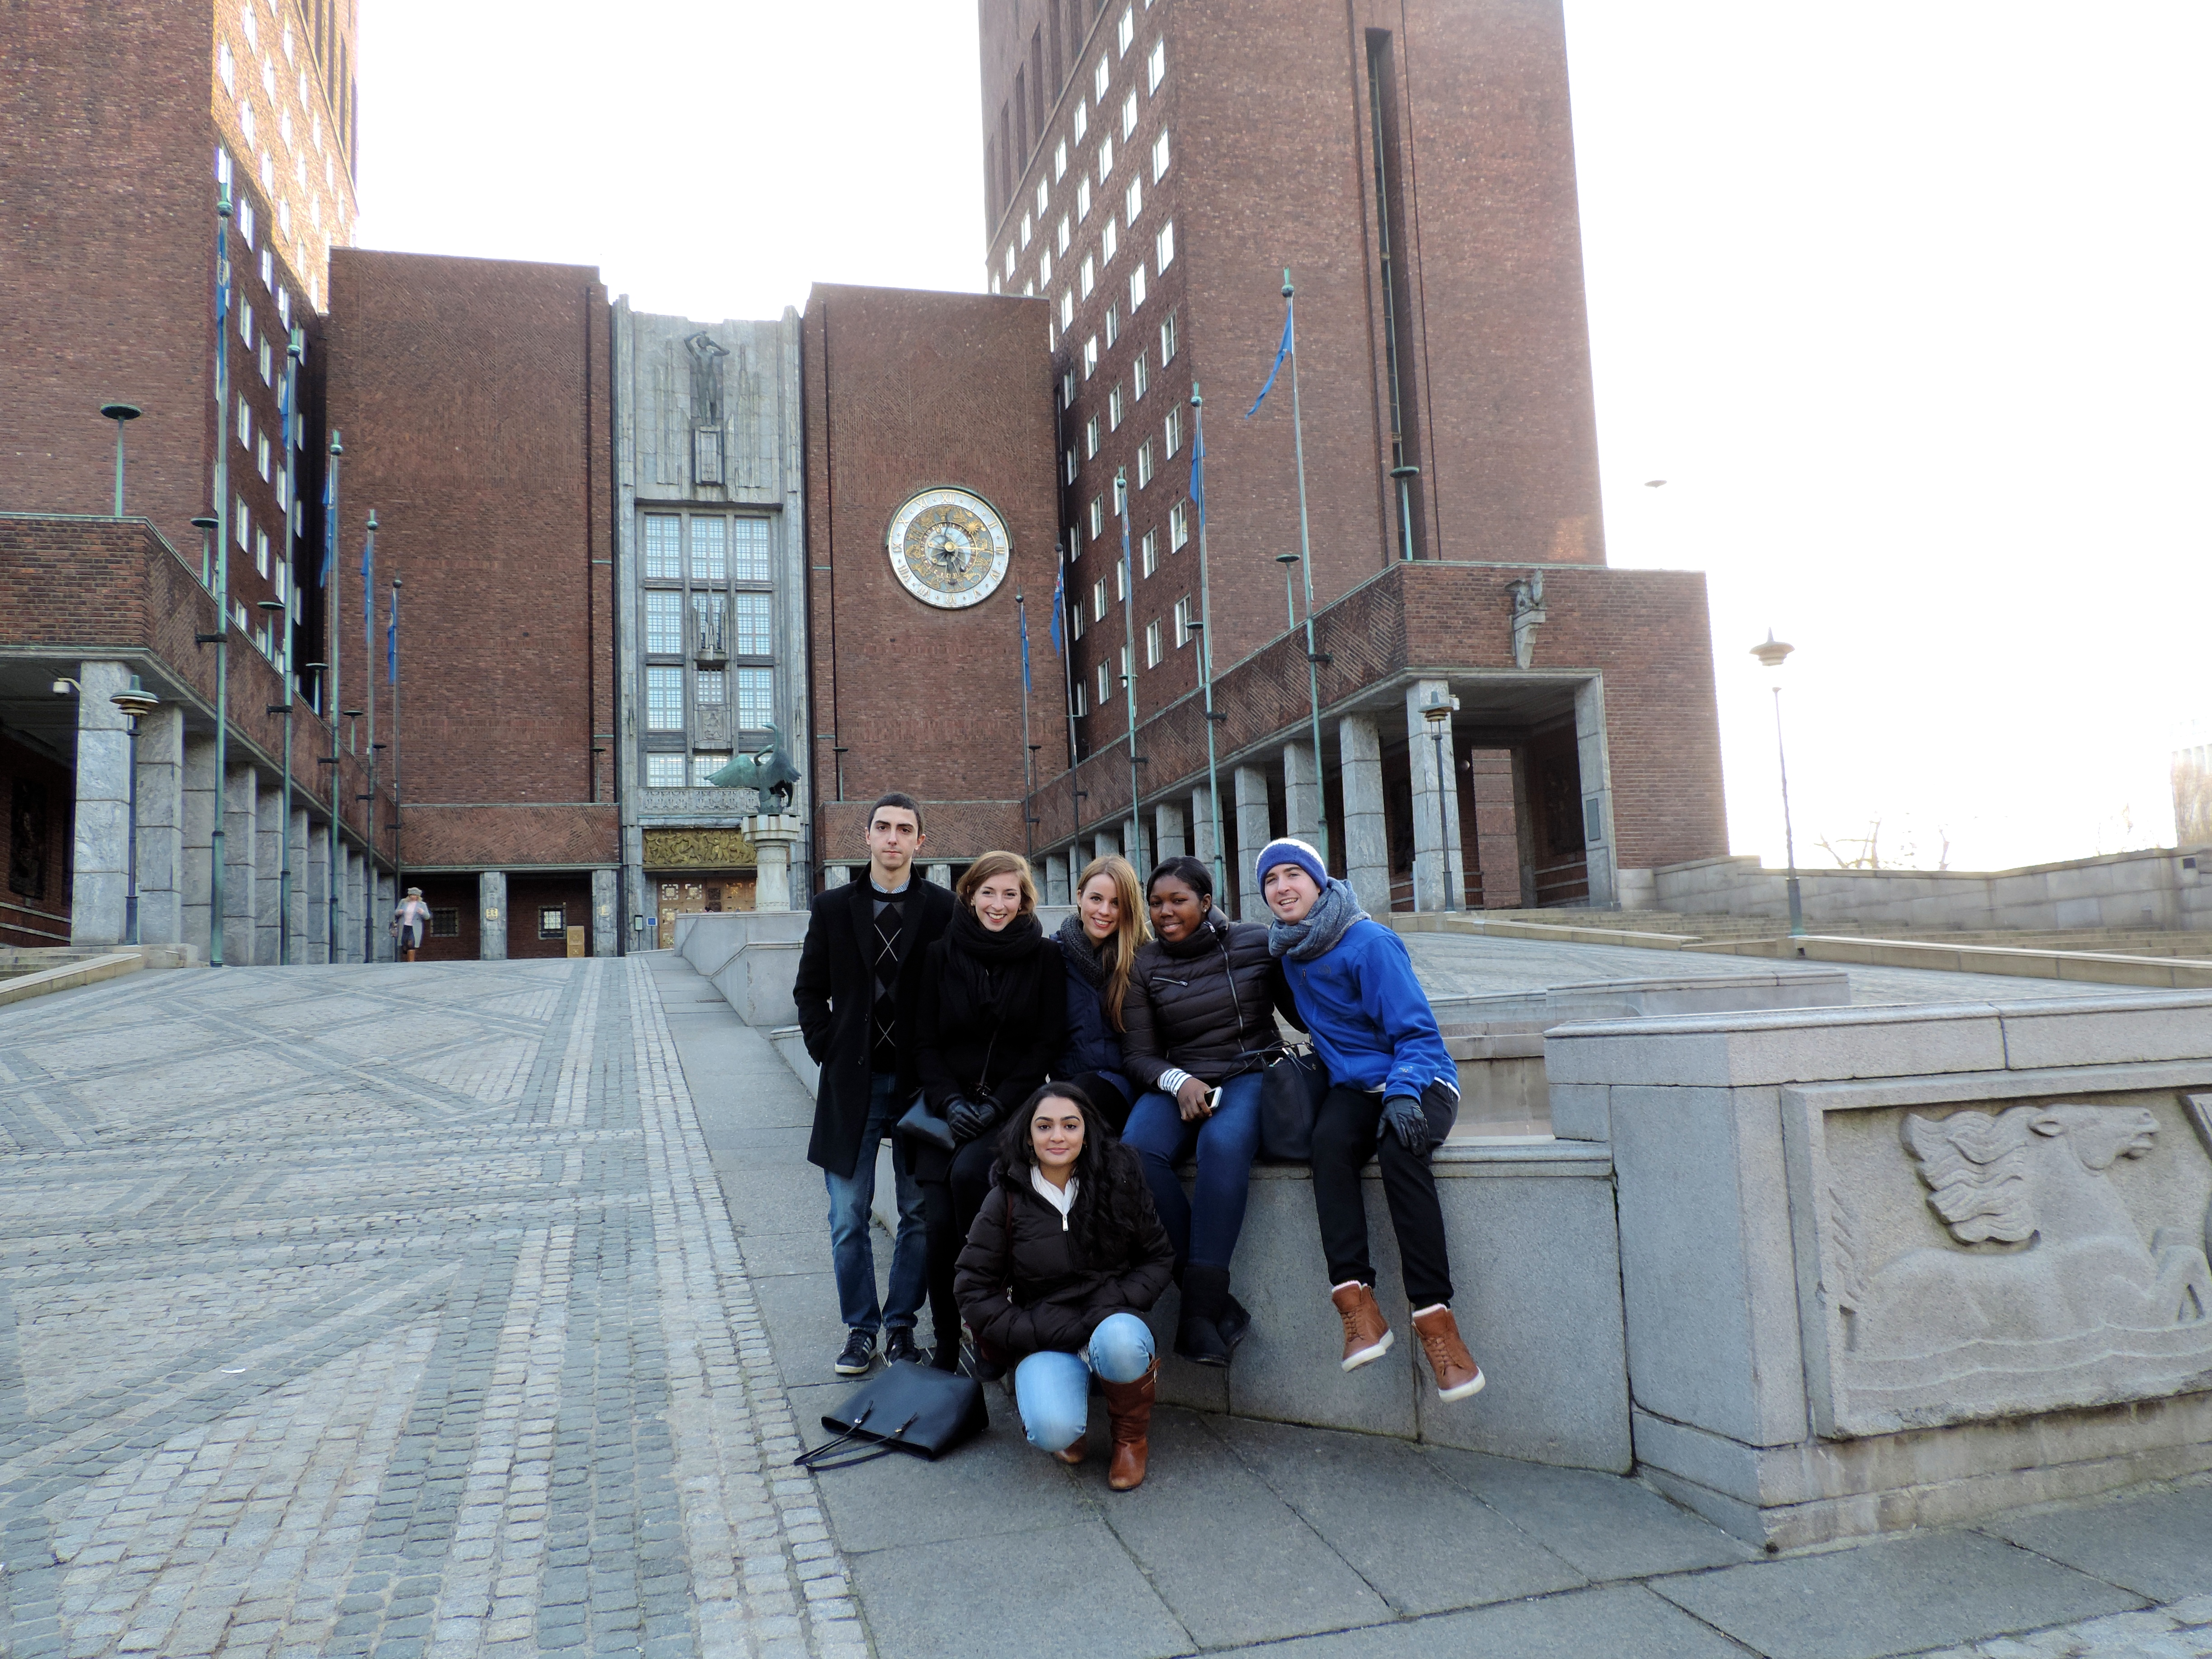 Pace New York City Model UN students visit Oslo City Hall while attending the 2015 OsloMUN conference in Norway.